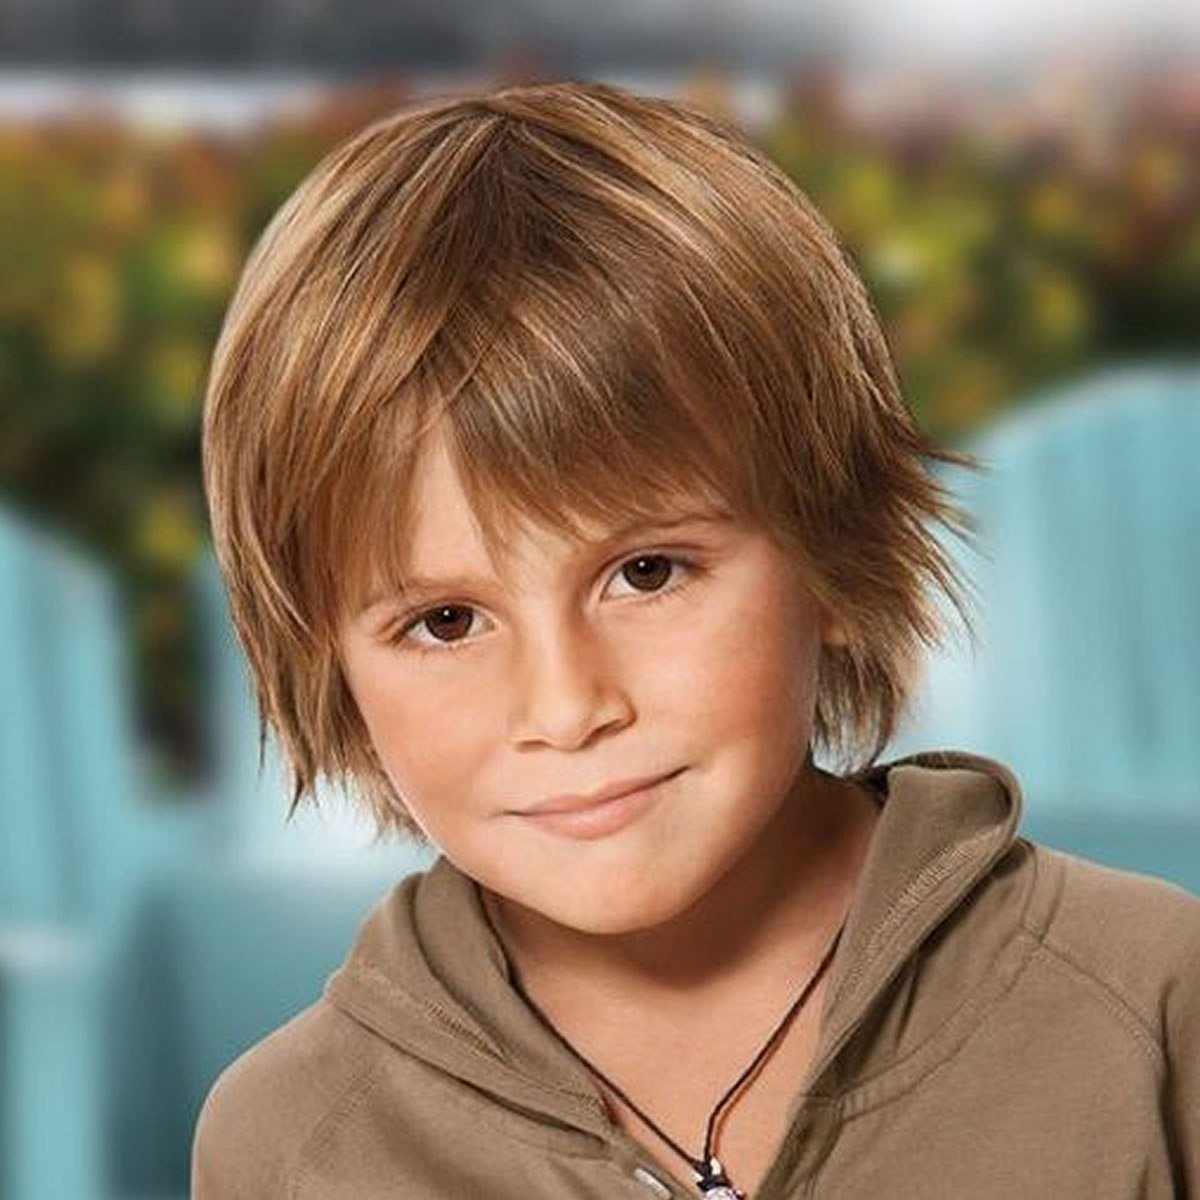 New Haircuts For Little Boys 2018 2019 – Hairstyles Ideas With Pictures